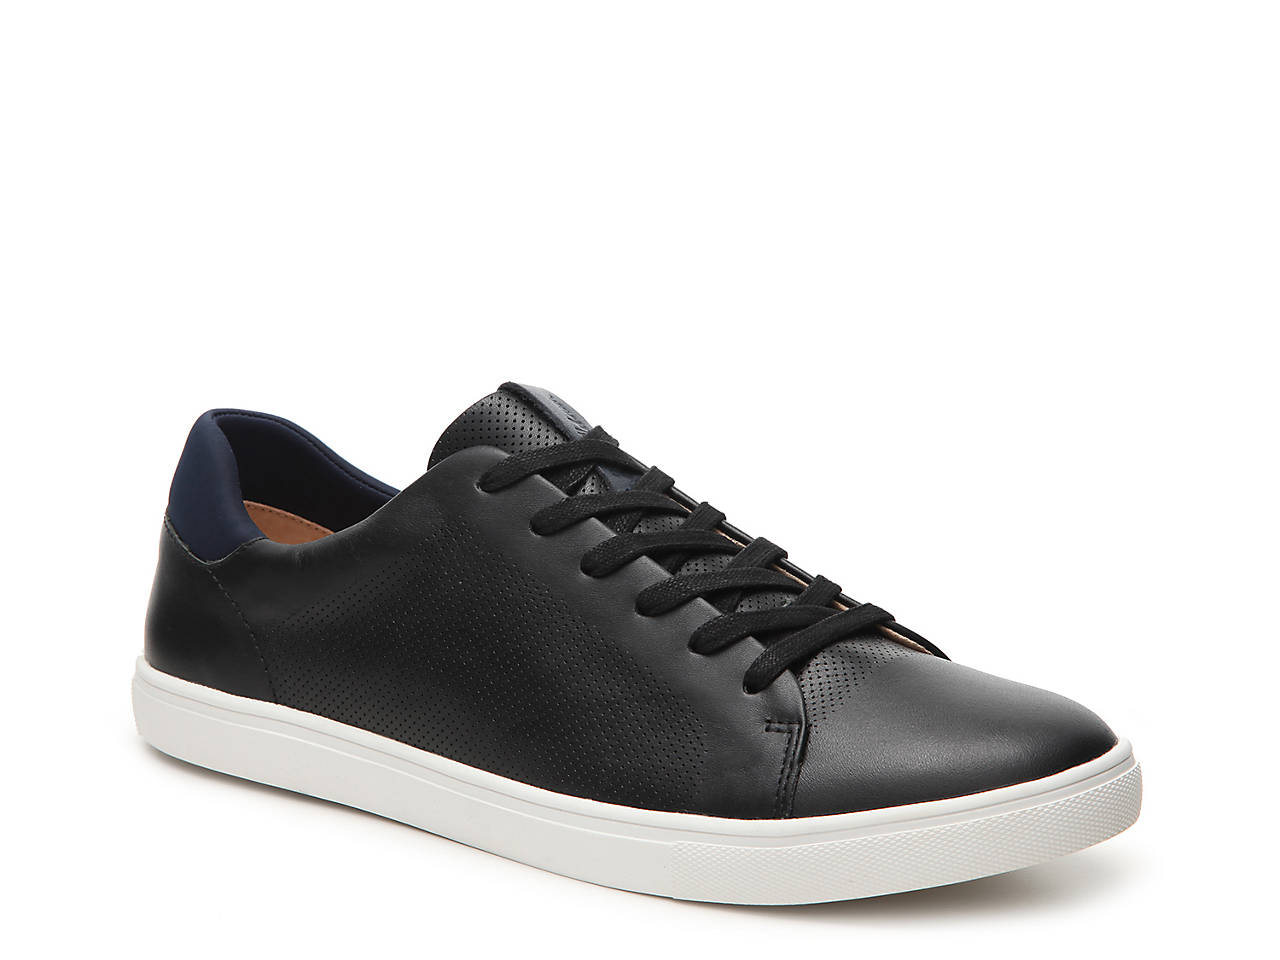 c9ce77748 Sam Edelman Tyson Sneaker Men s Shoes